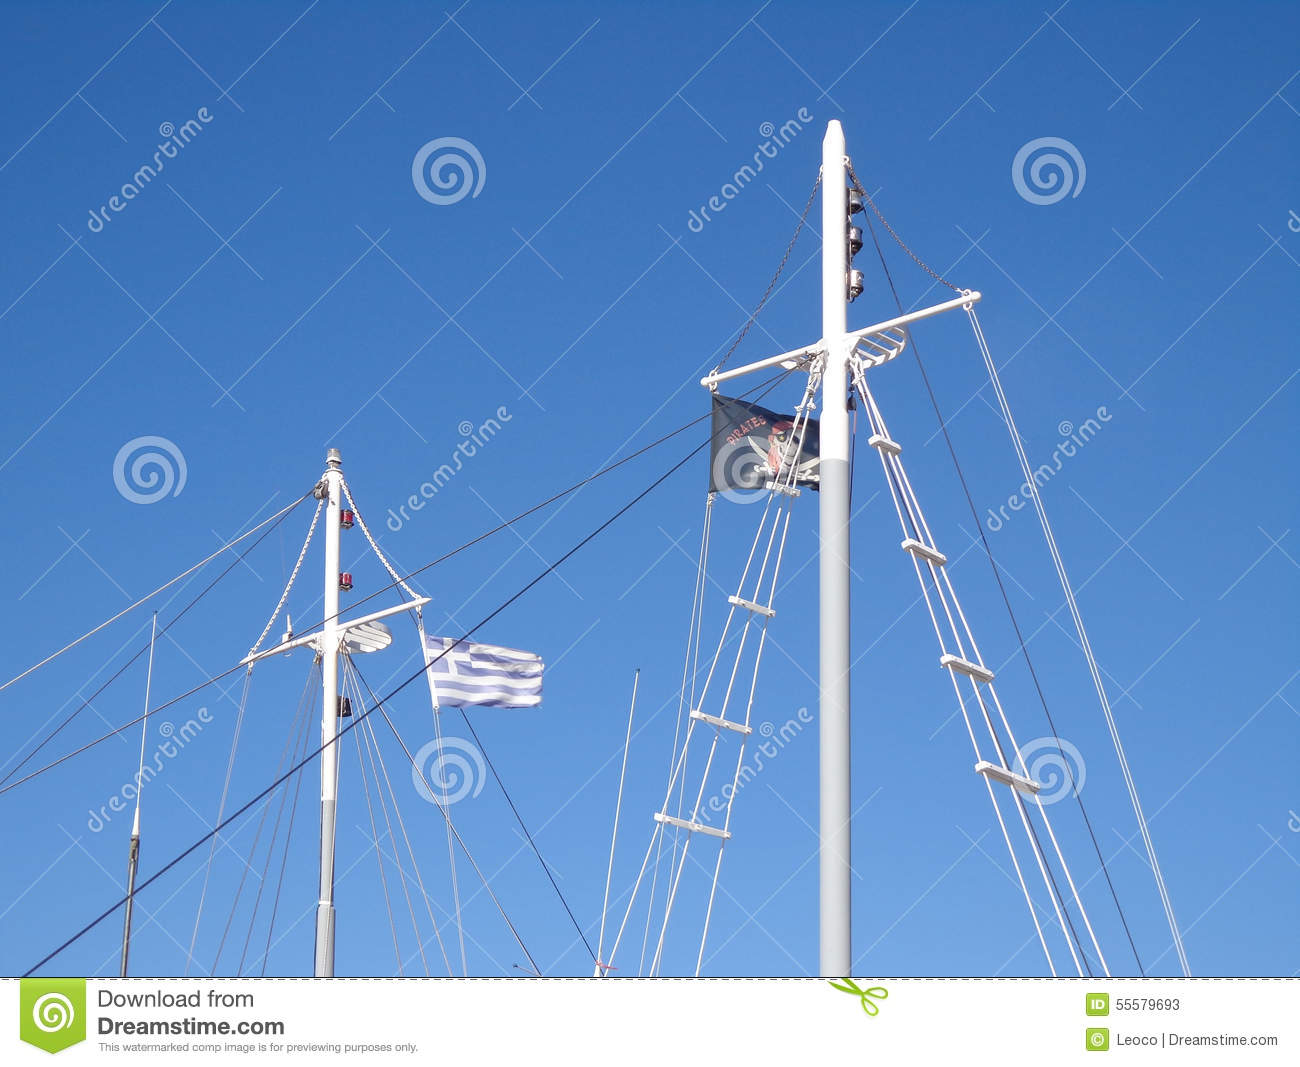 Flags on the masts